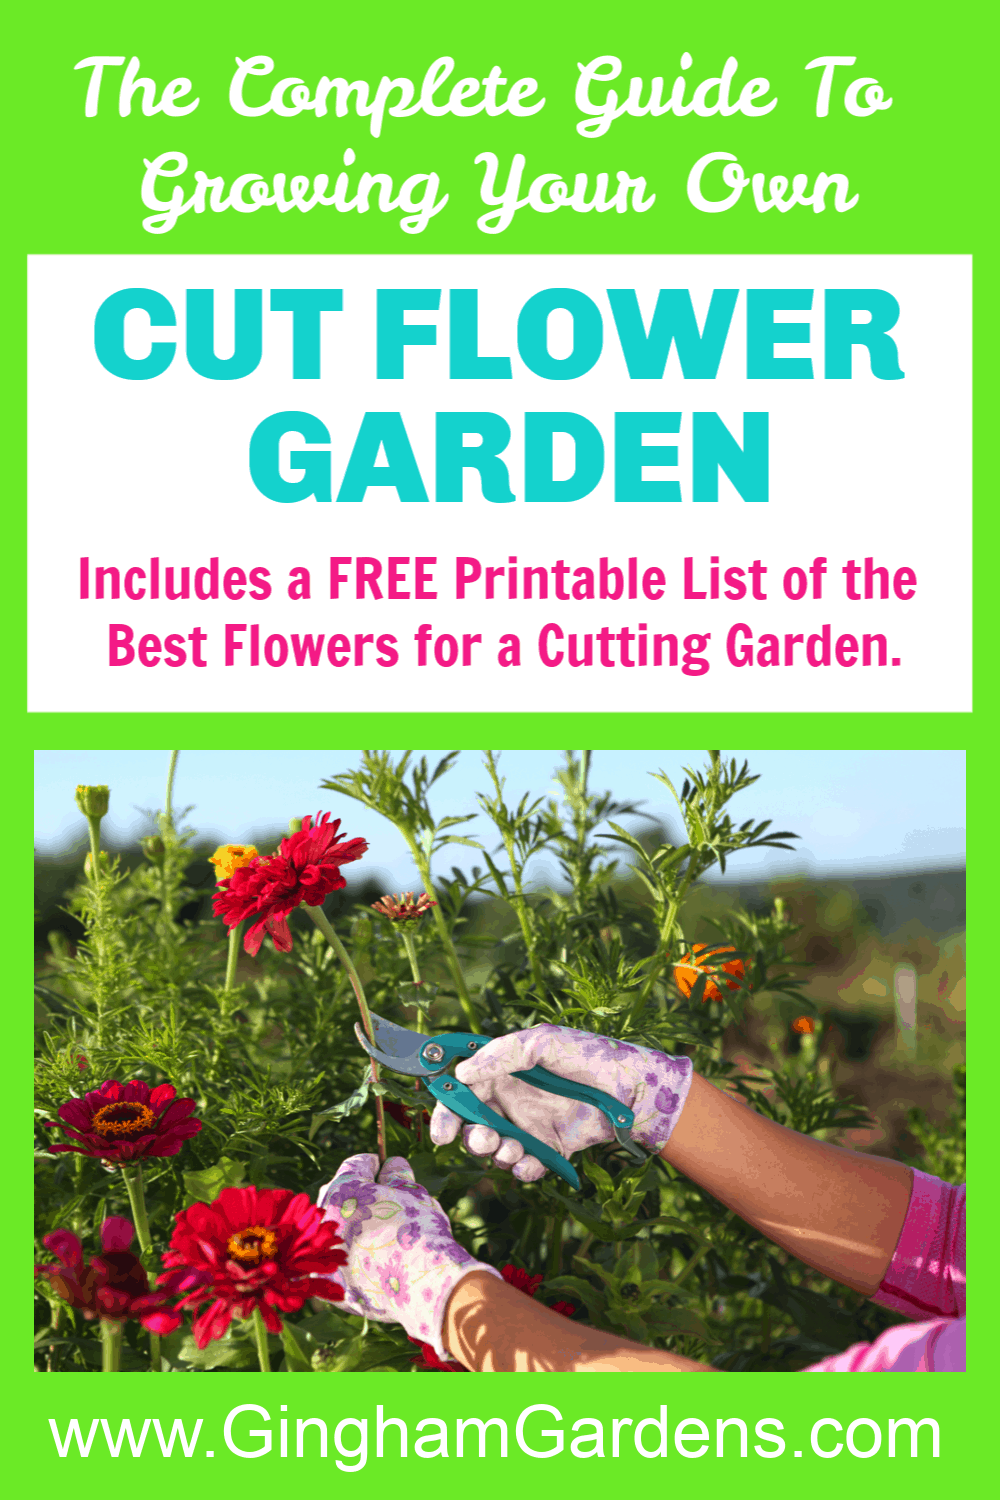 Gardener Cutting Zinnias with Text Overlay - The Complete Guide to Growing Your Own Cut Flower Garden